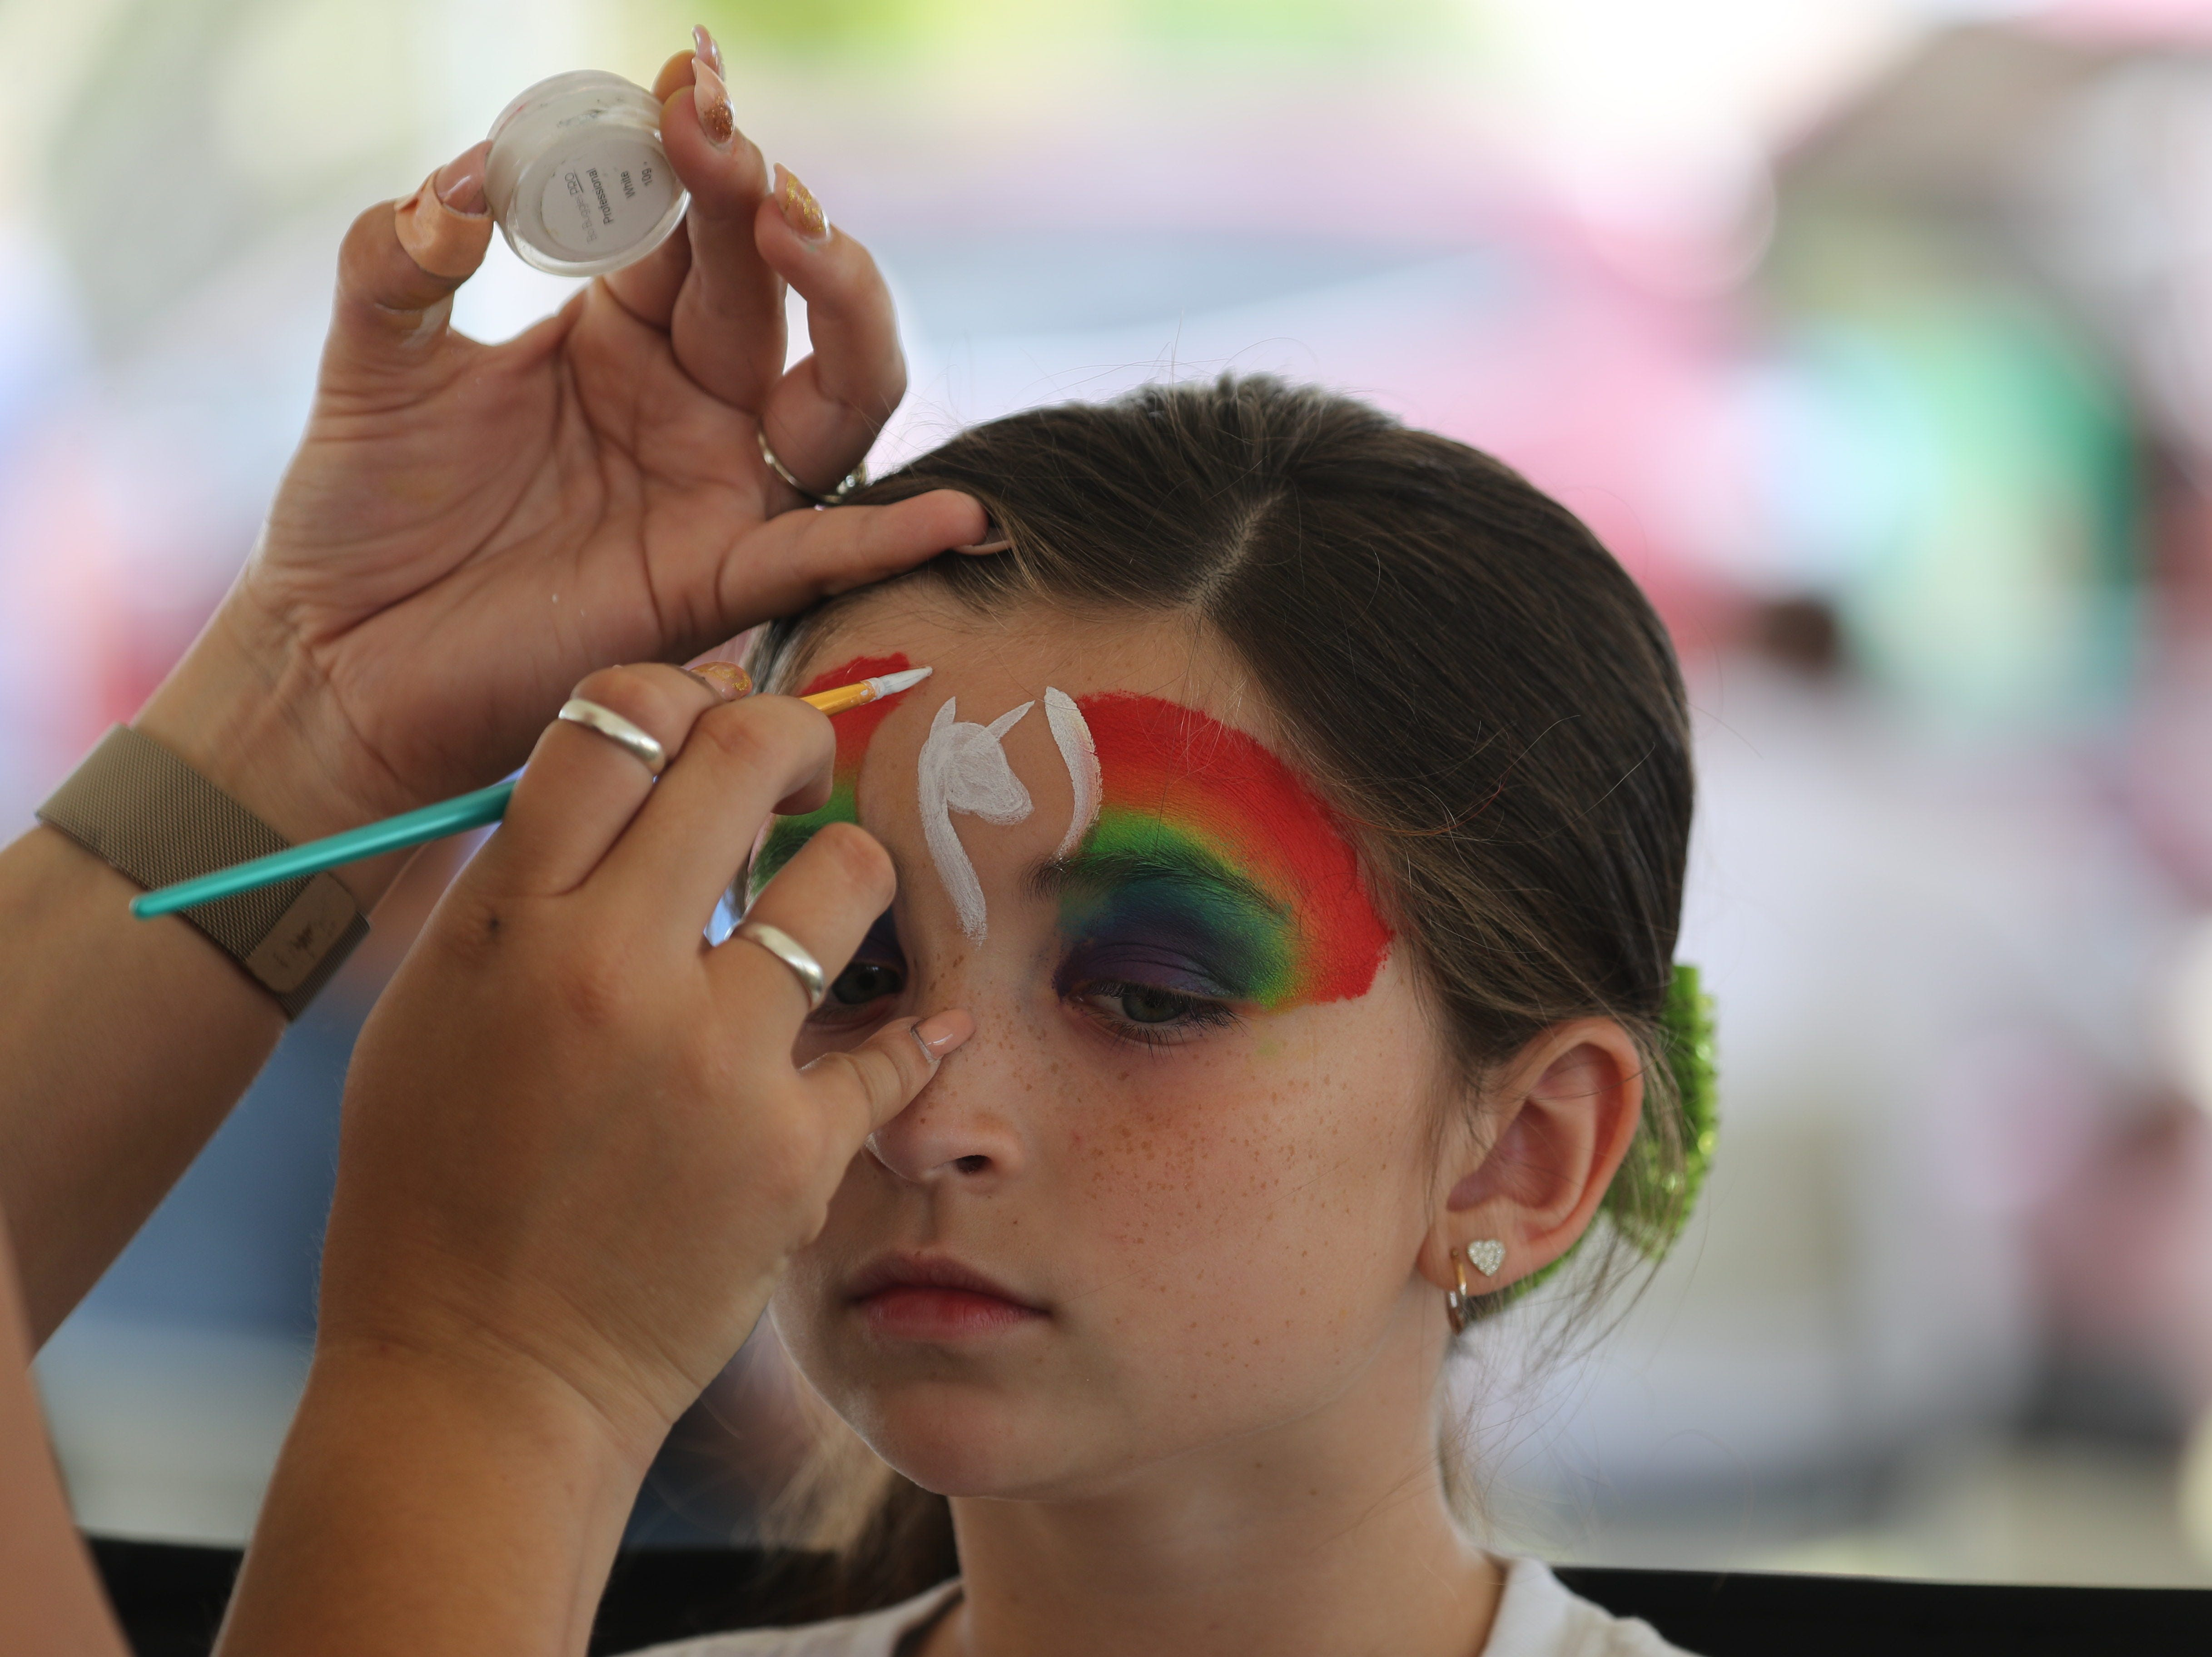 Bella Spinner, 8, has her face painted at the Lights for Layla on Saturday at Cape Assembly in Cape Coral.